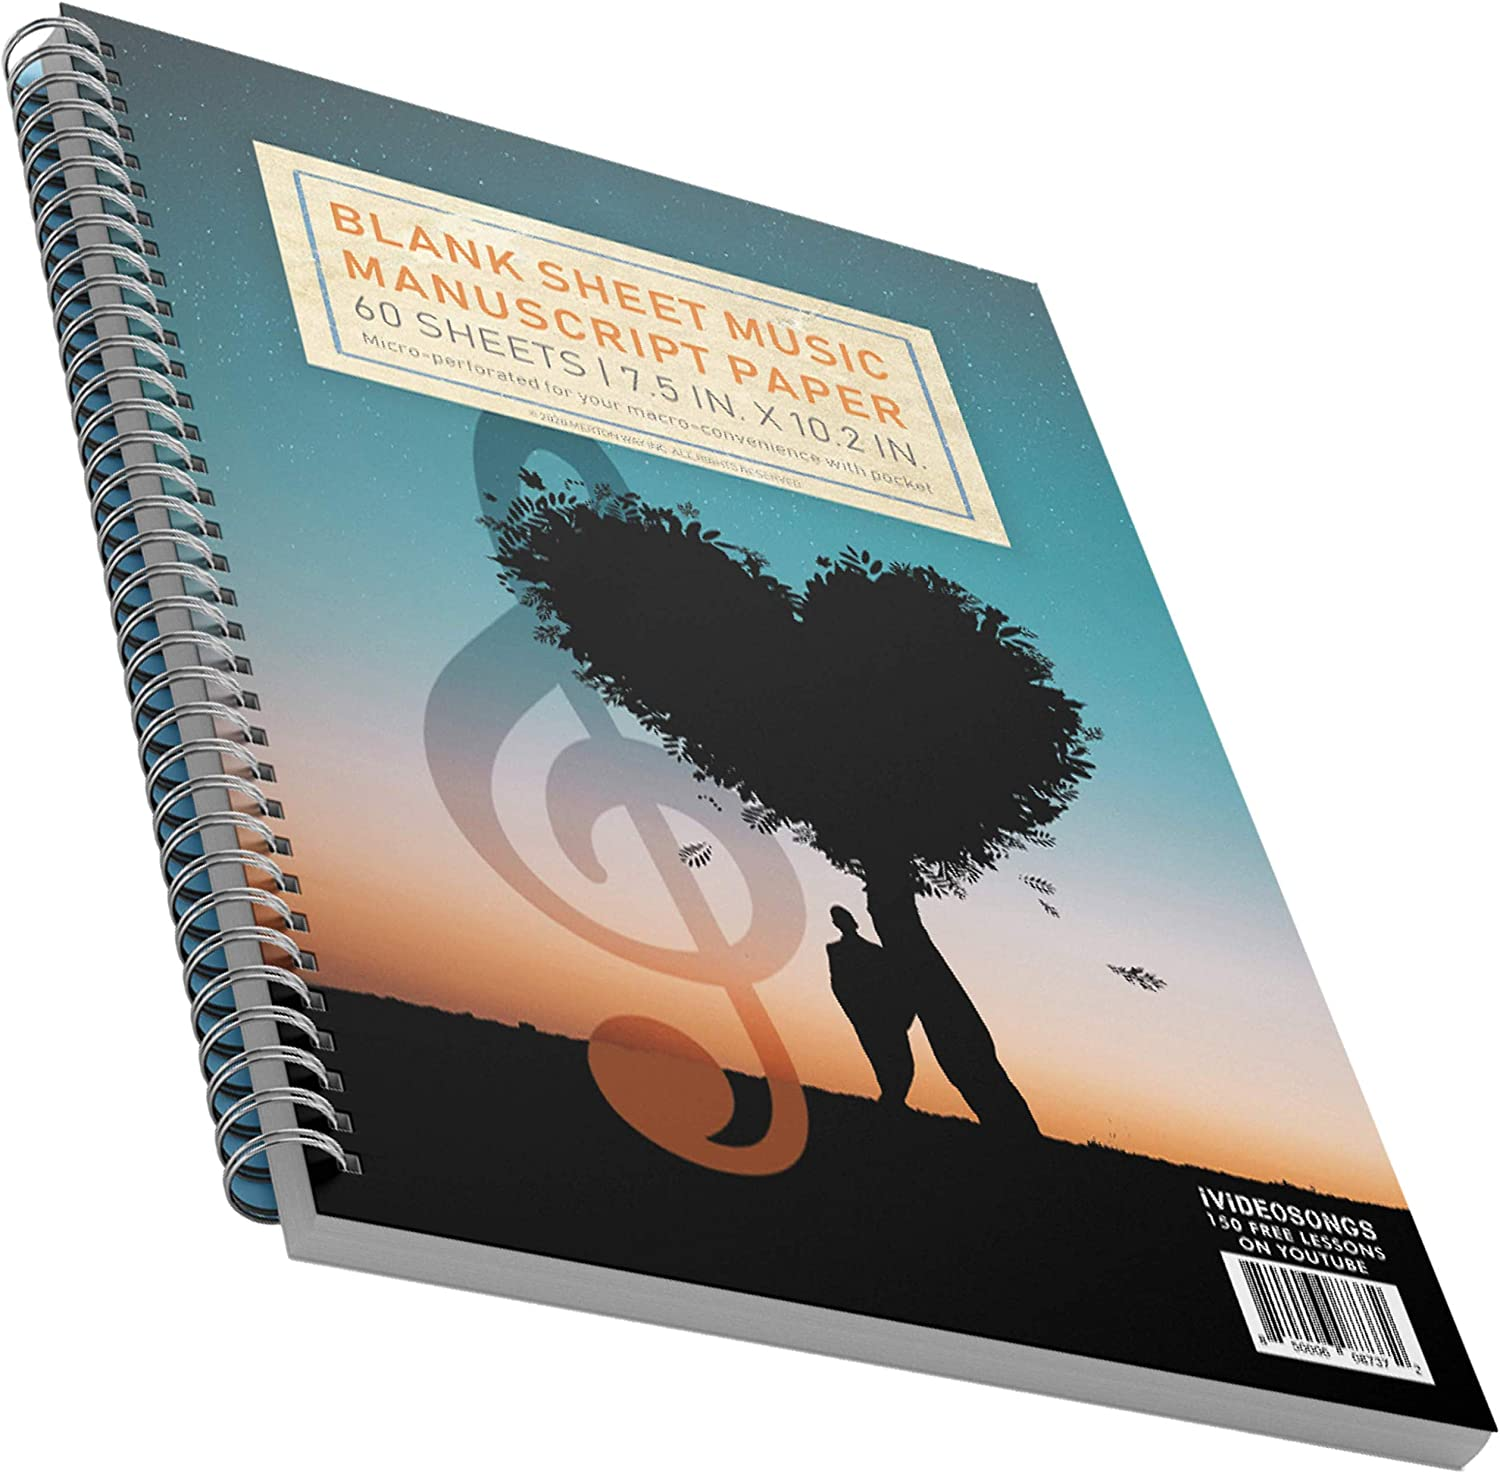 iVideosongs Blank Sheet Music Composition Manuscript Music Notebook • 12 Staff per Page • 120 Pages (60 Sheets) • 150+ Lessons